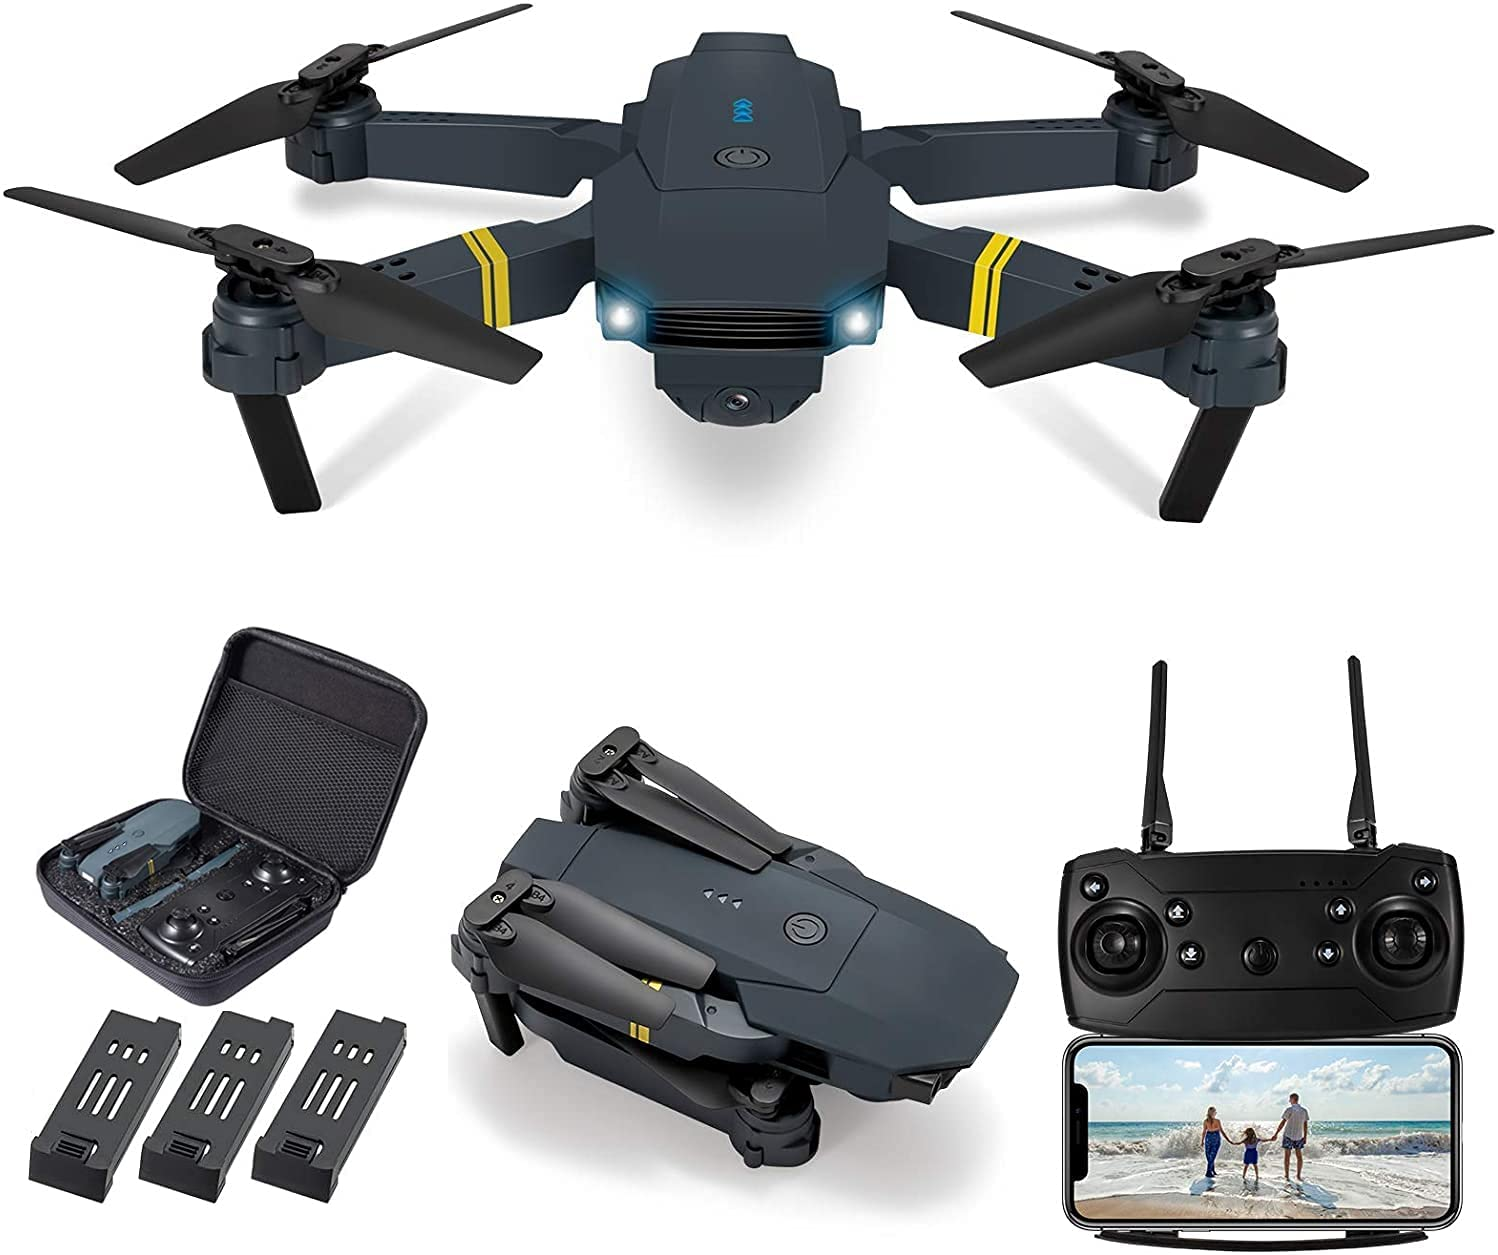 LOYALSE E58 Drone with Camera for Adults/Kids Foldable RC Quadcopter Drone with 1080P HD Camera, WiFi FPV Live Video, Altitude Hold, One Key Take Off/Landing, 3D Flip, APP Control (3Pcs Batteries)